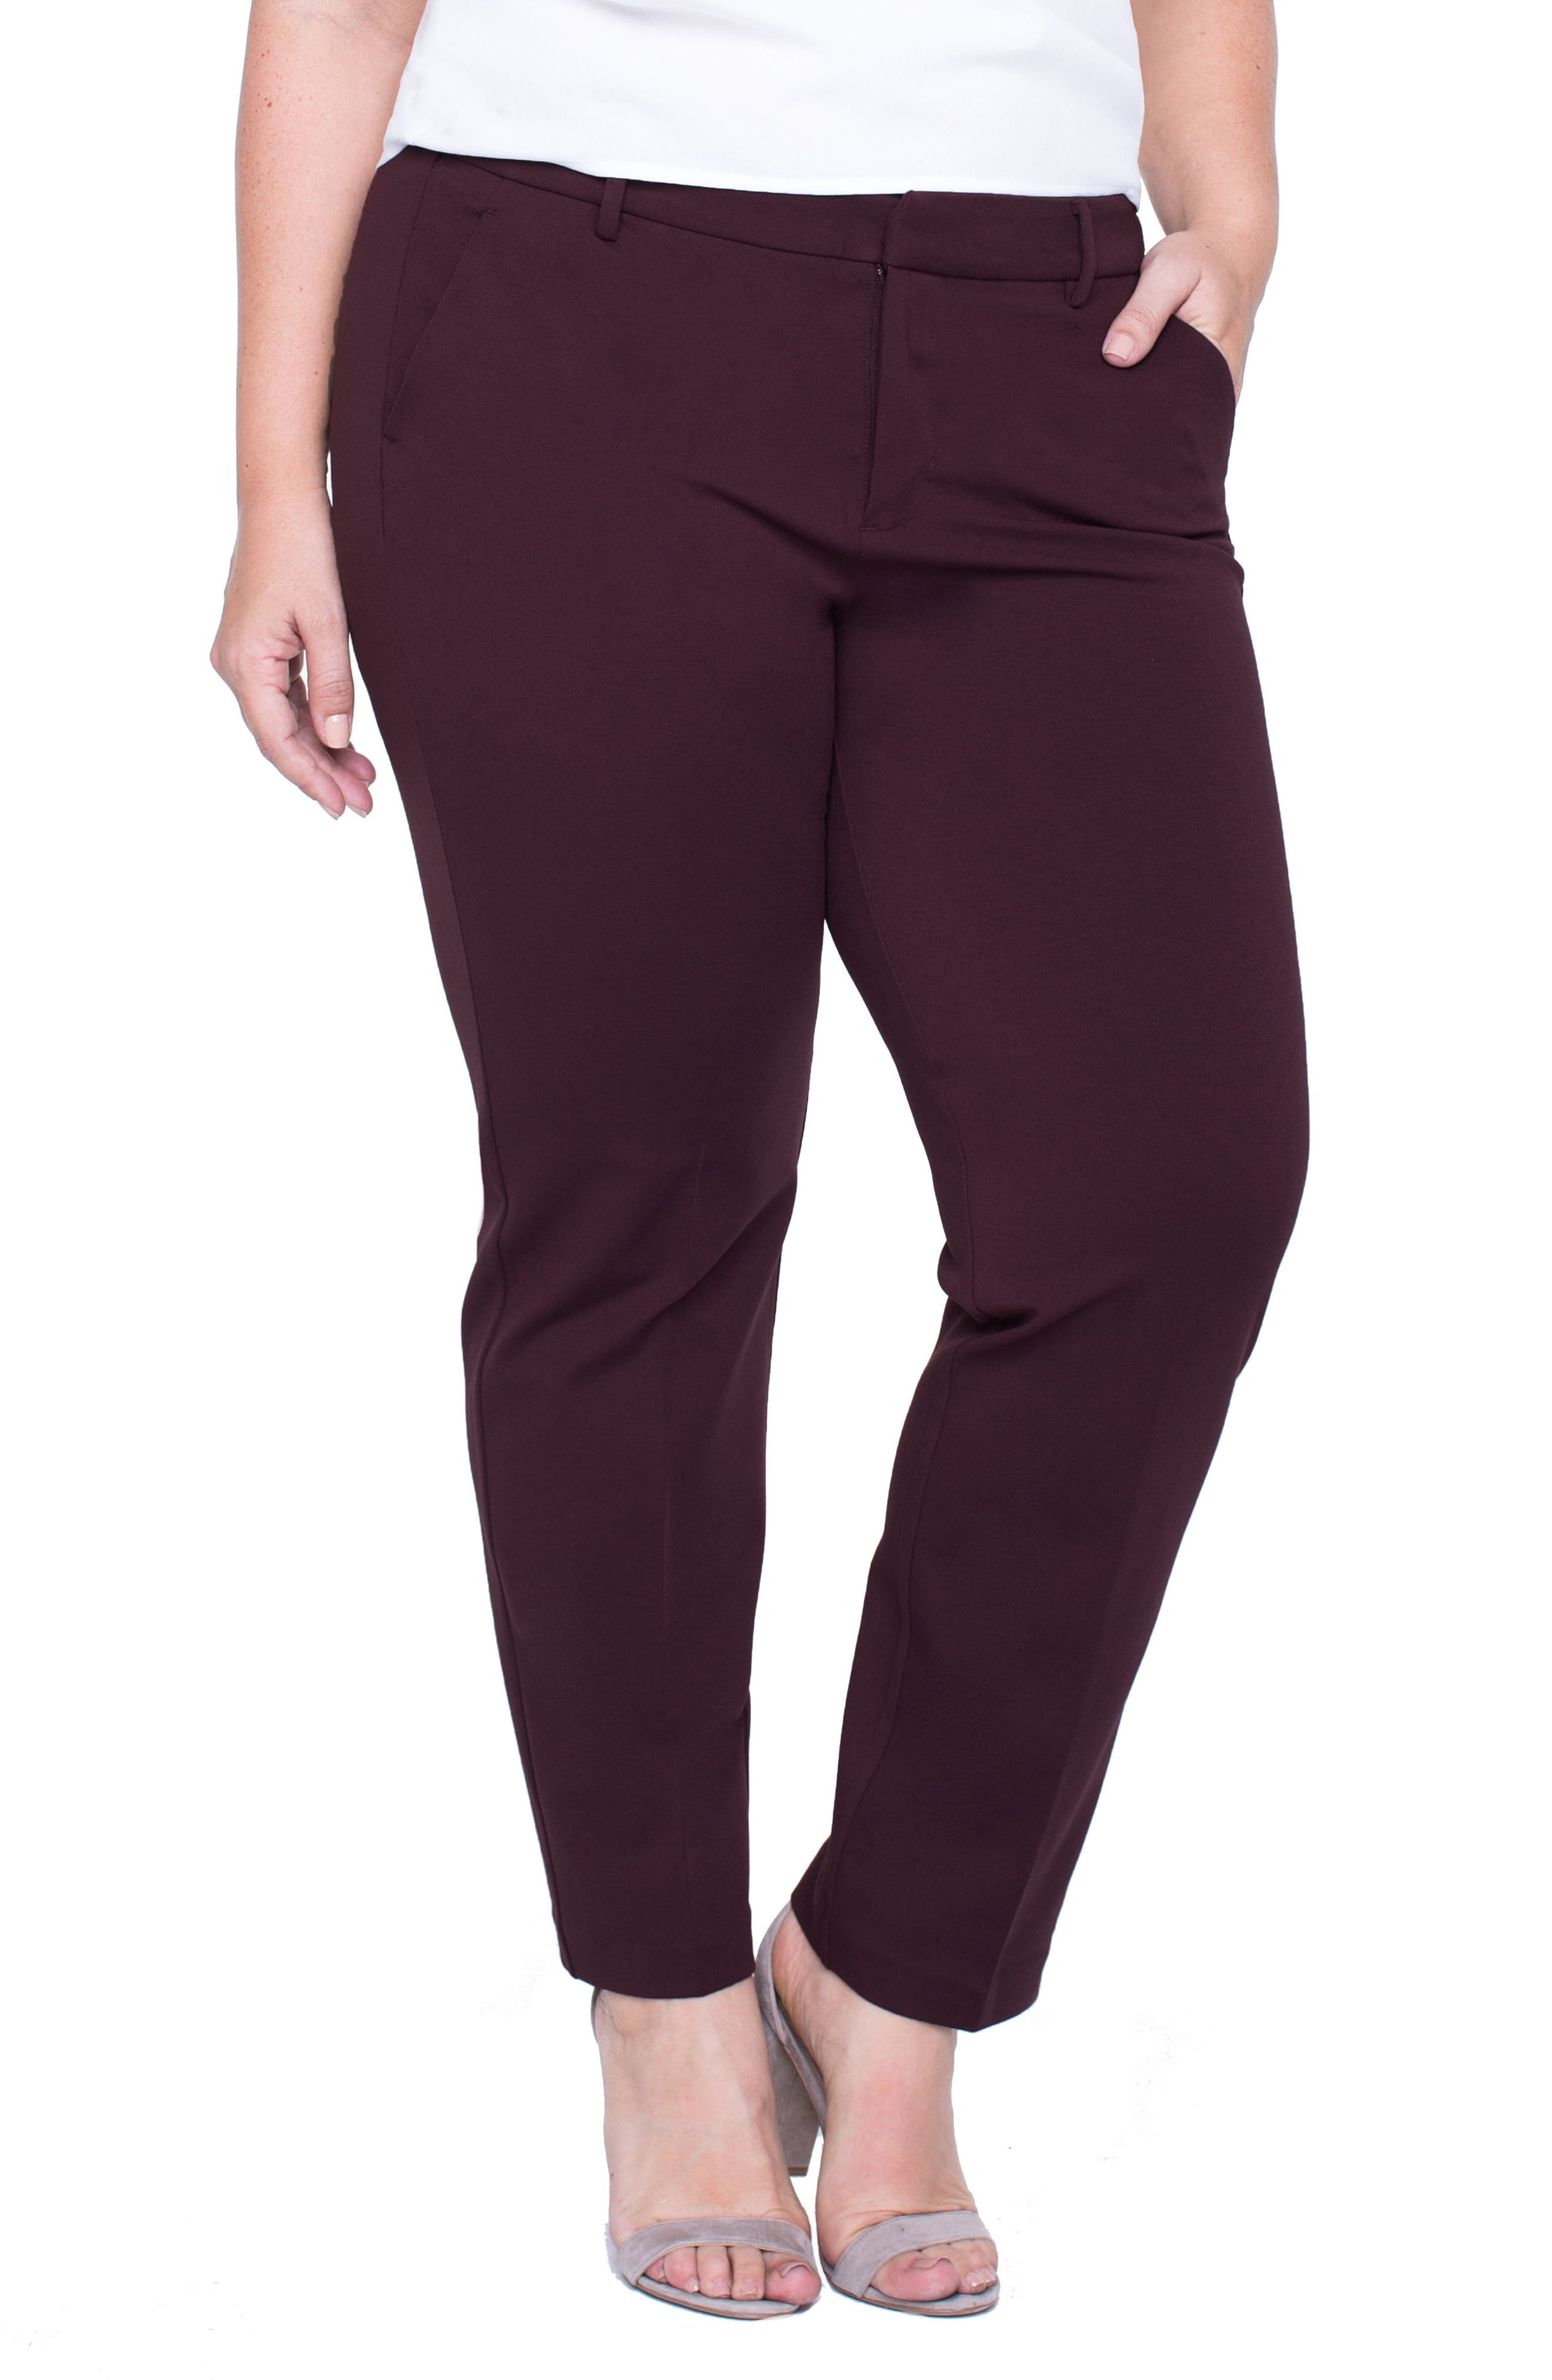 Alternate Image 1 Selected - Liverpool Jeans Company Kelsey Ponte Knit Trousers (Plus Size)